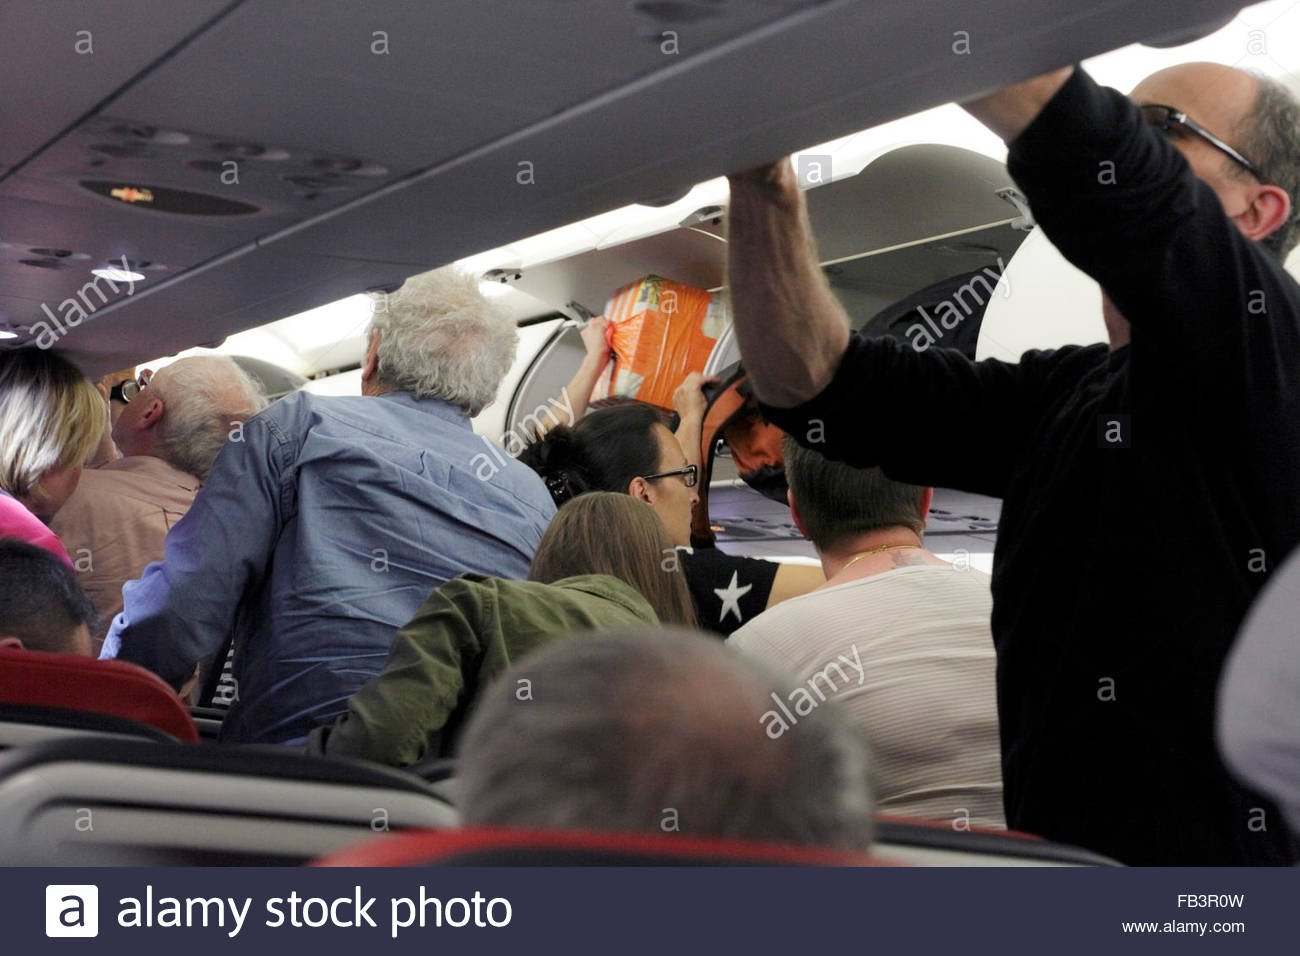 airplane passenger getting their overhead luggage - Stock Image